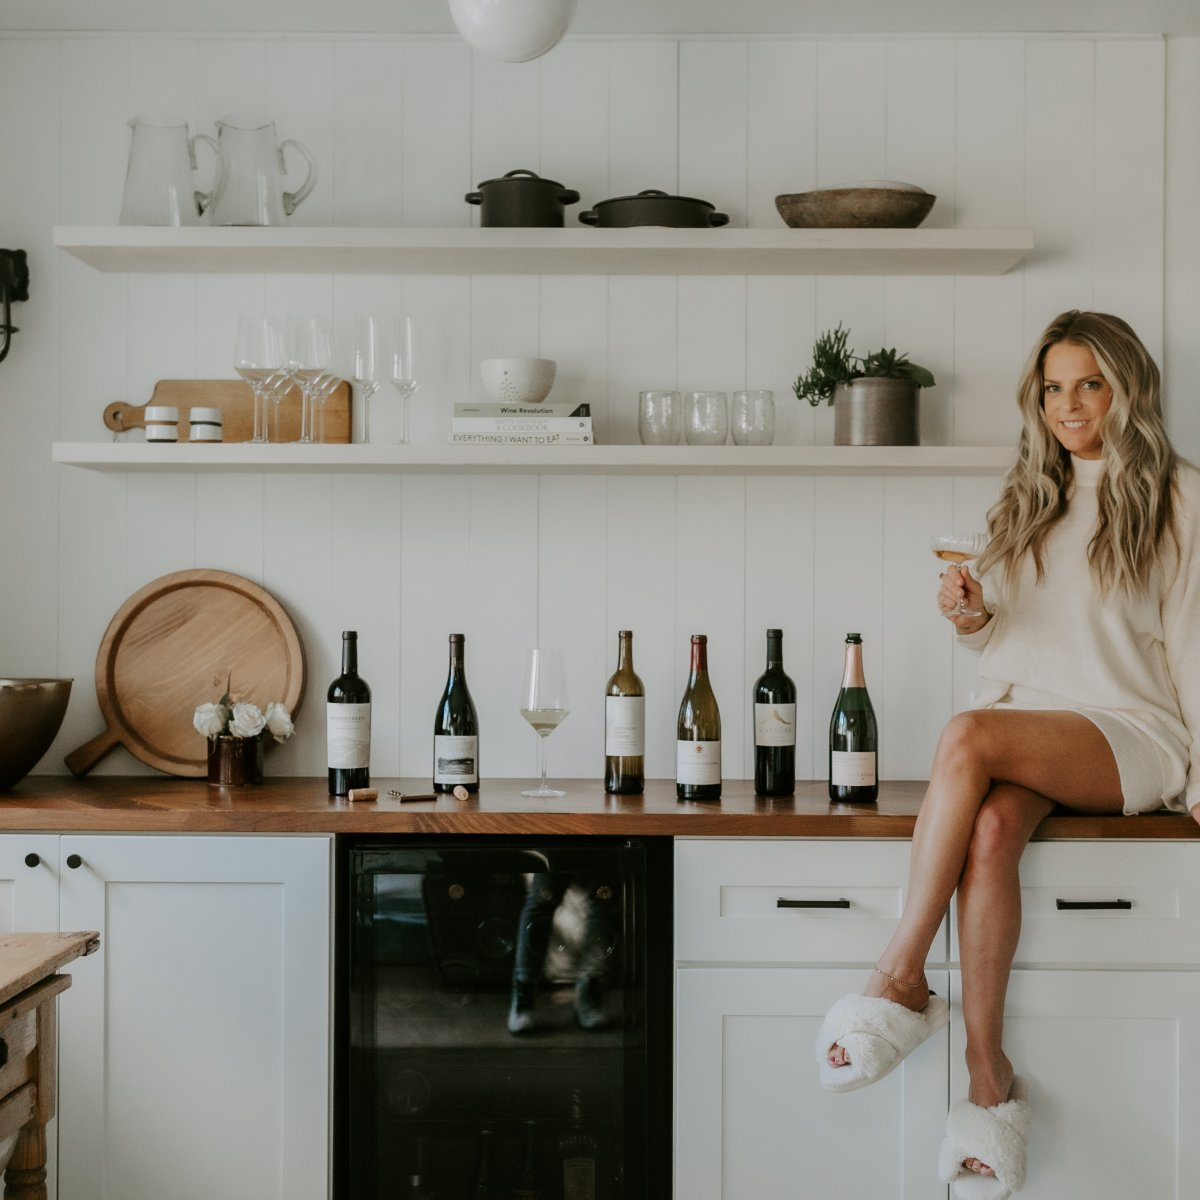 Woman Sitting on Counter with Wine